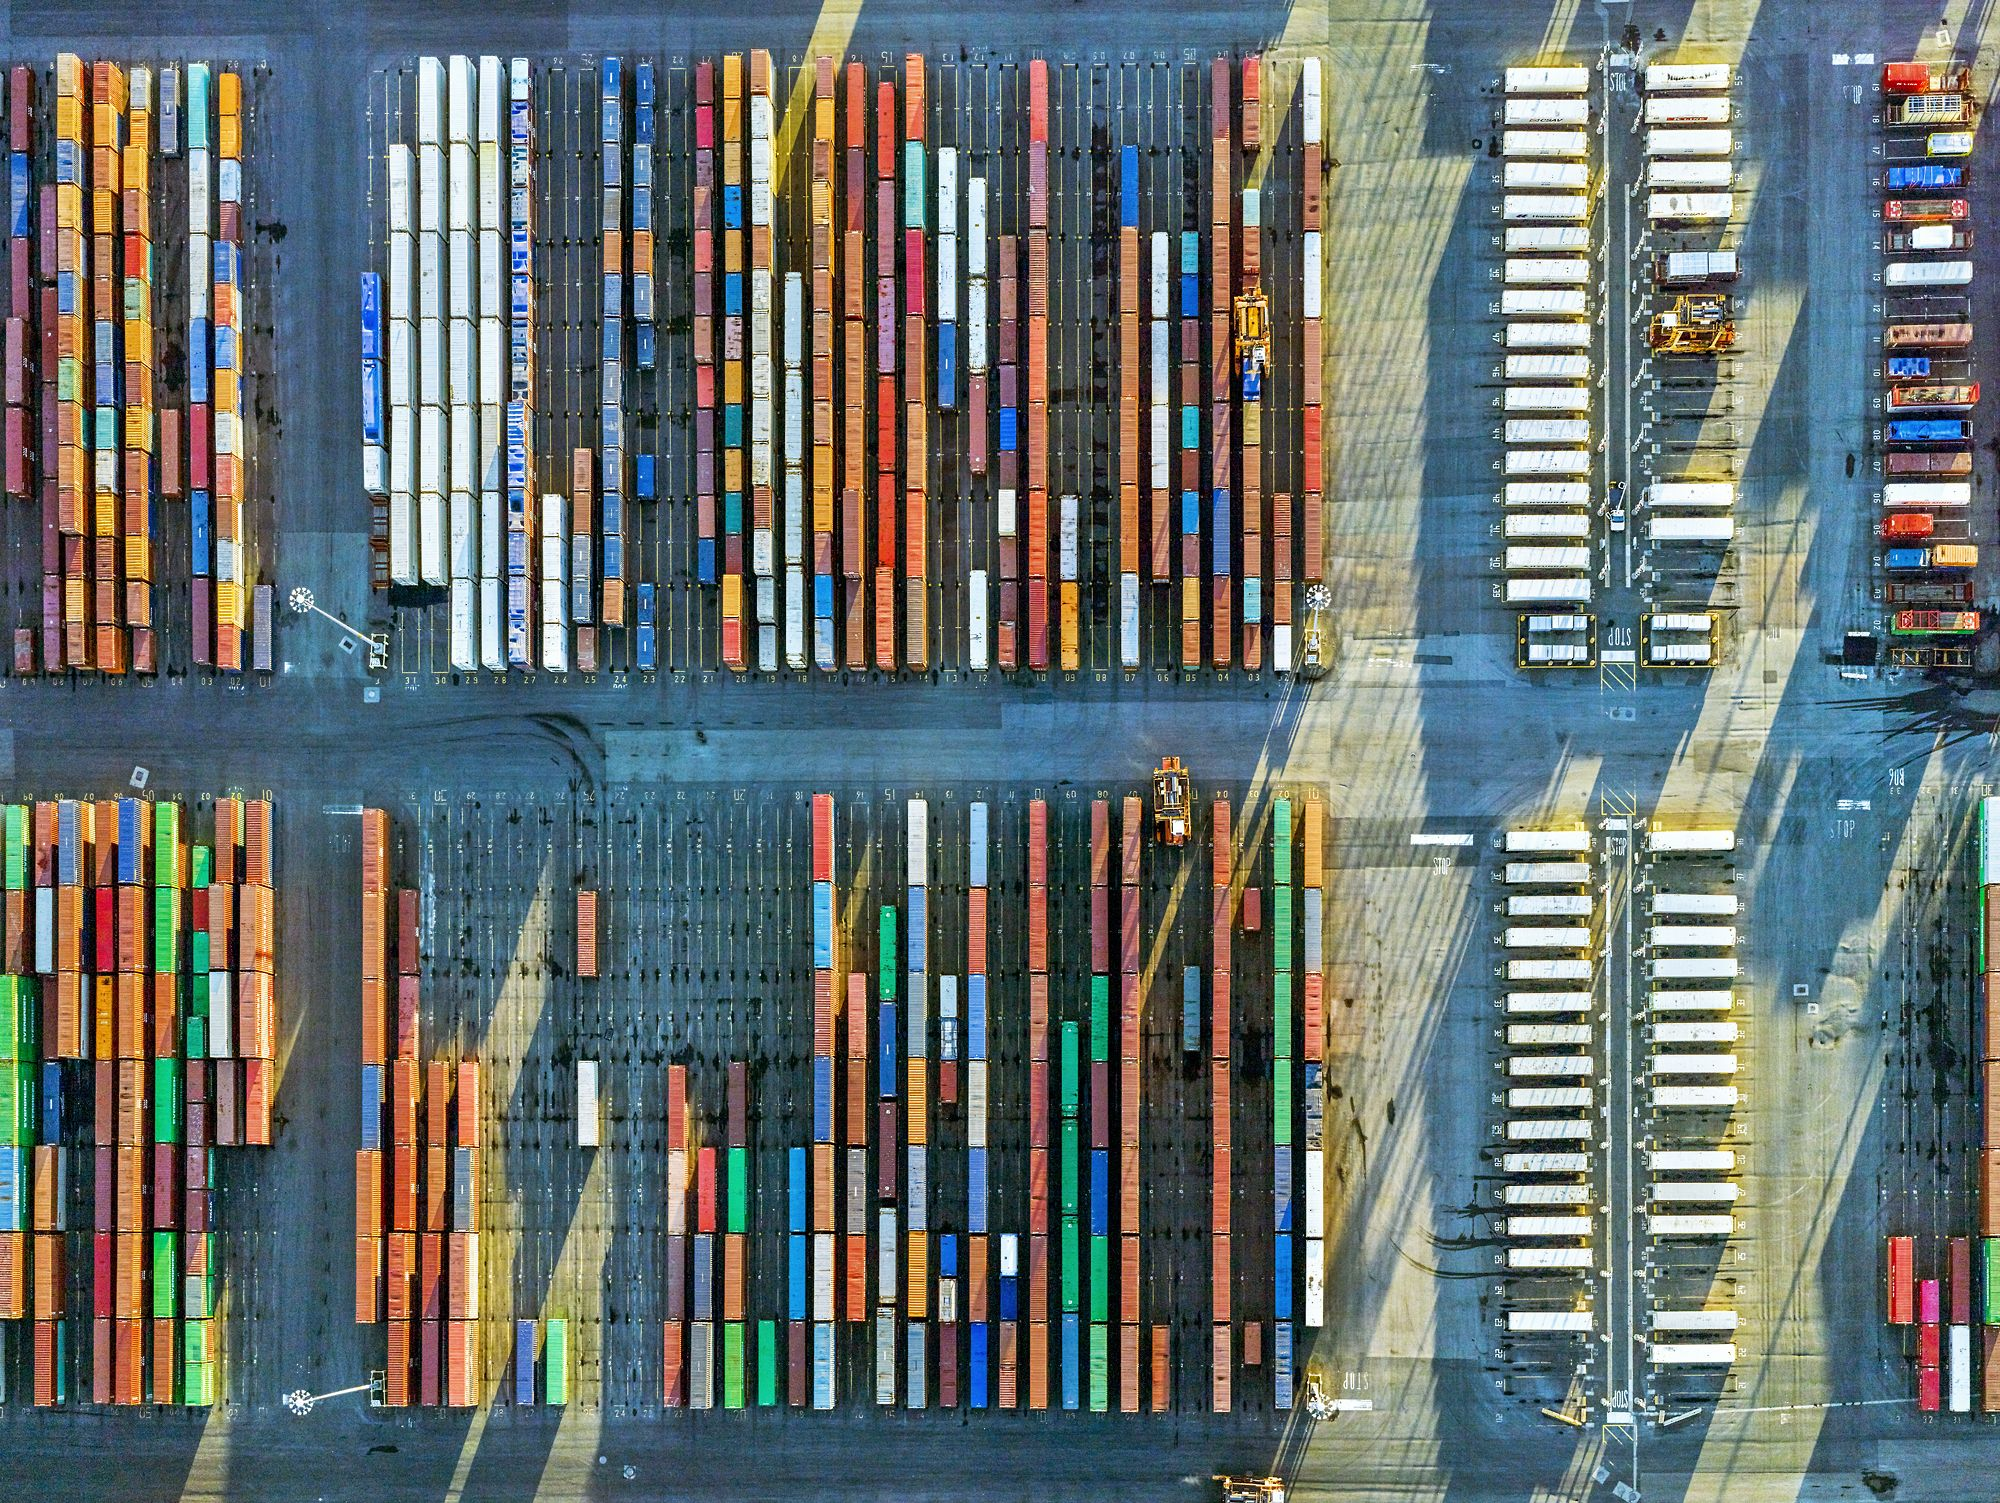 Shipping containers at port in Newark, N.J., 2016.